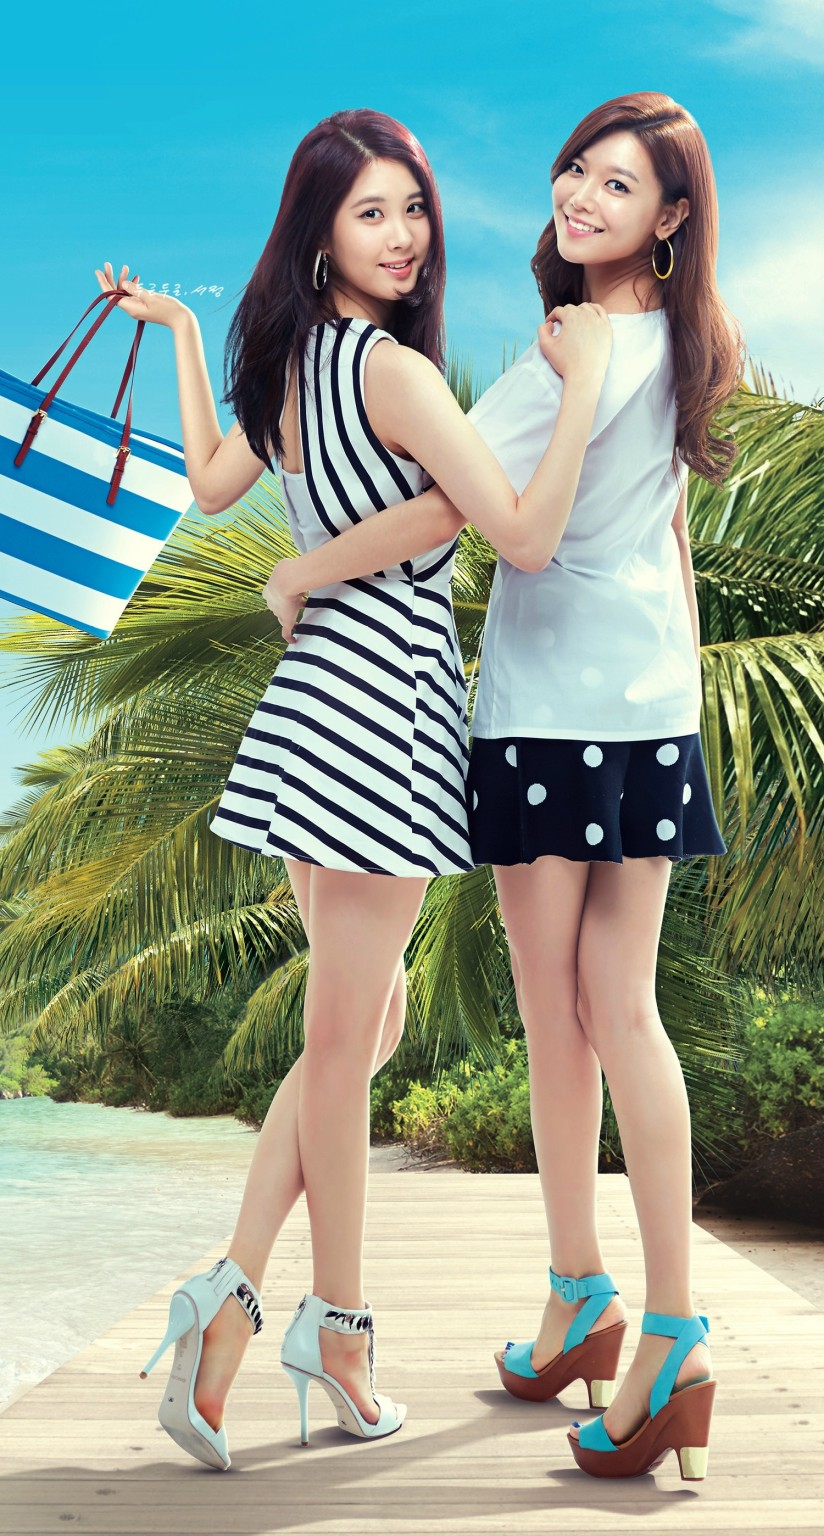 [140718] Sooyoung & Seohyun (SNSD) New Picture for Lotte Department Store (Scan) by SeoJeong's Weibo